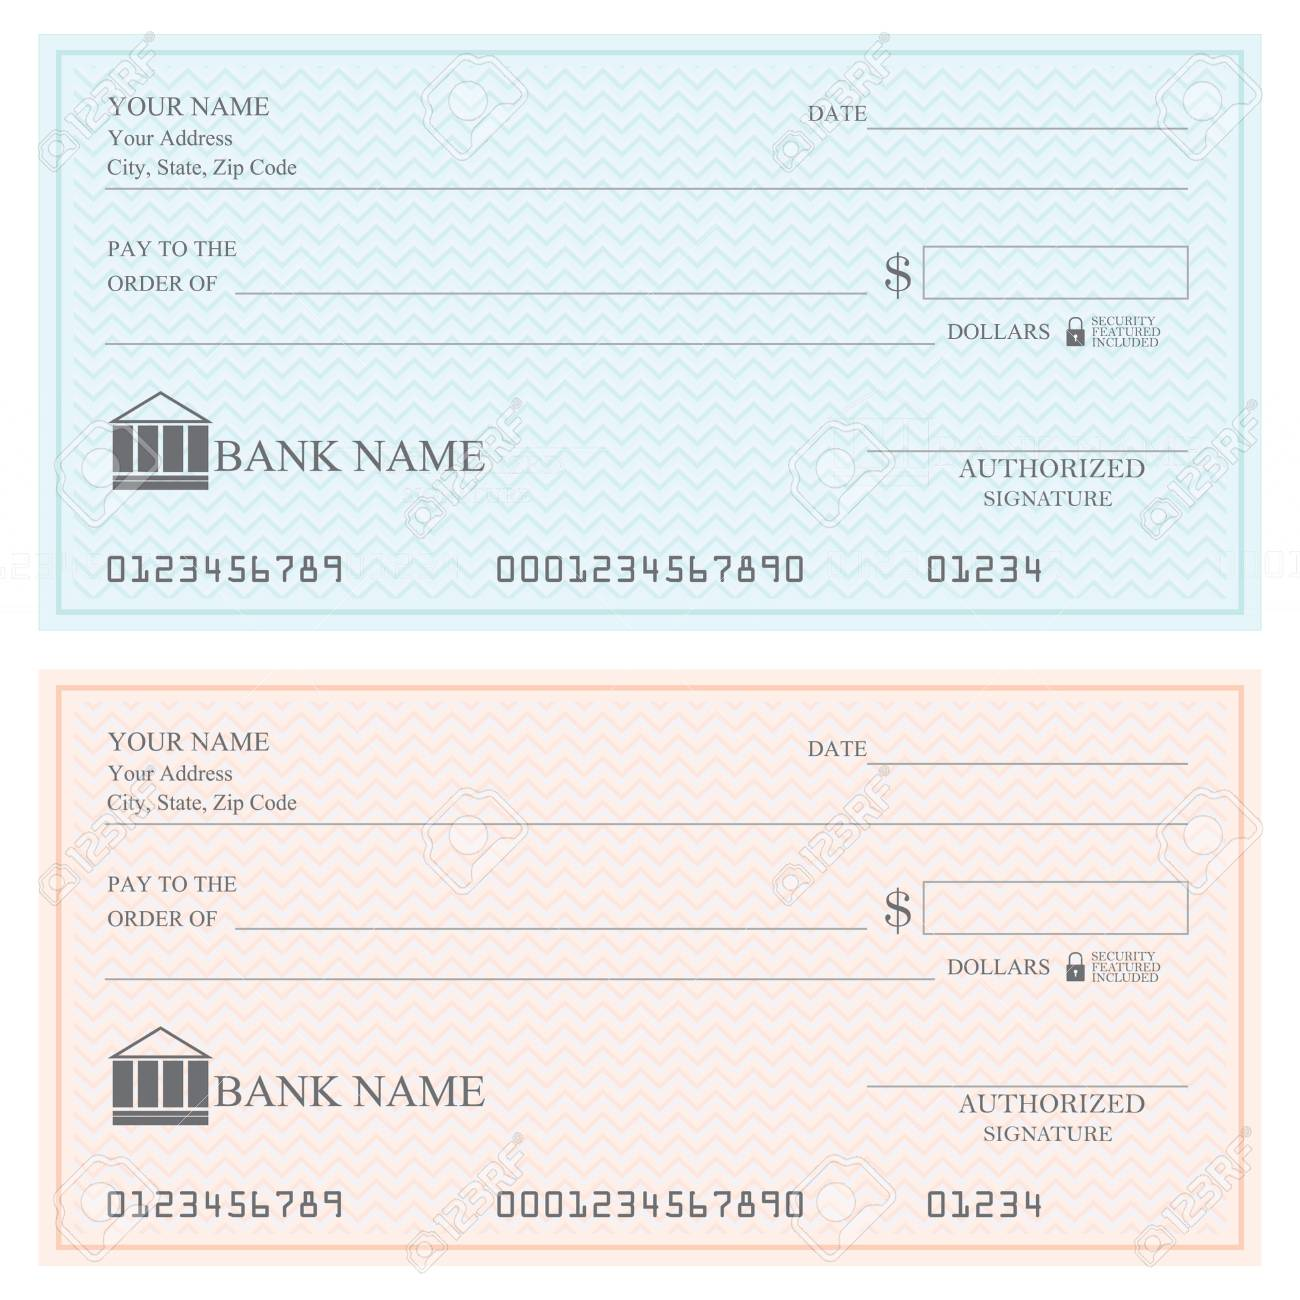 blank bank checks or cheque book royalty free cliparts vectors and